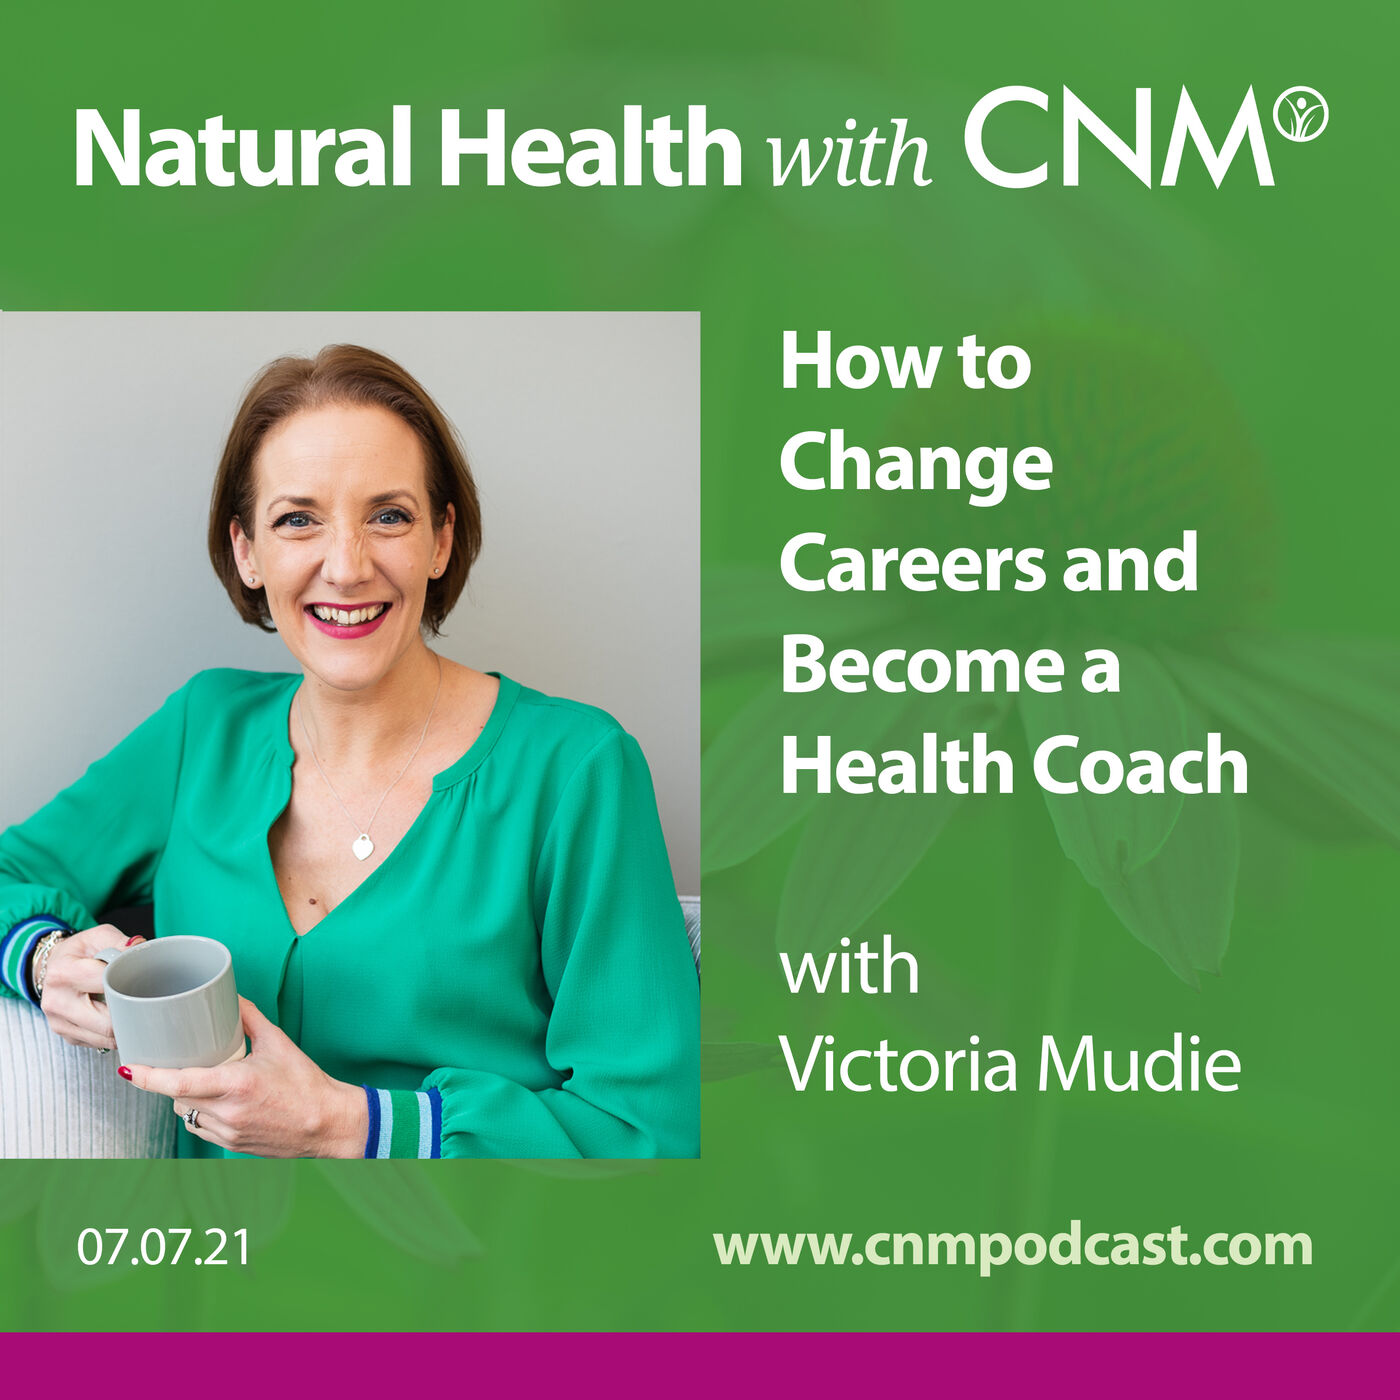 How to Change Careers & Become a Health Coach with Victoria Mudie